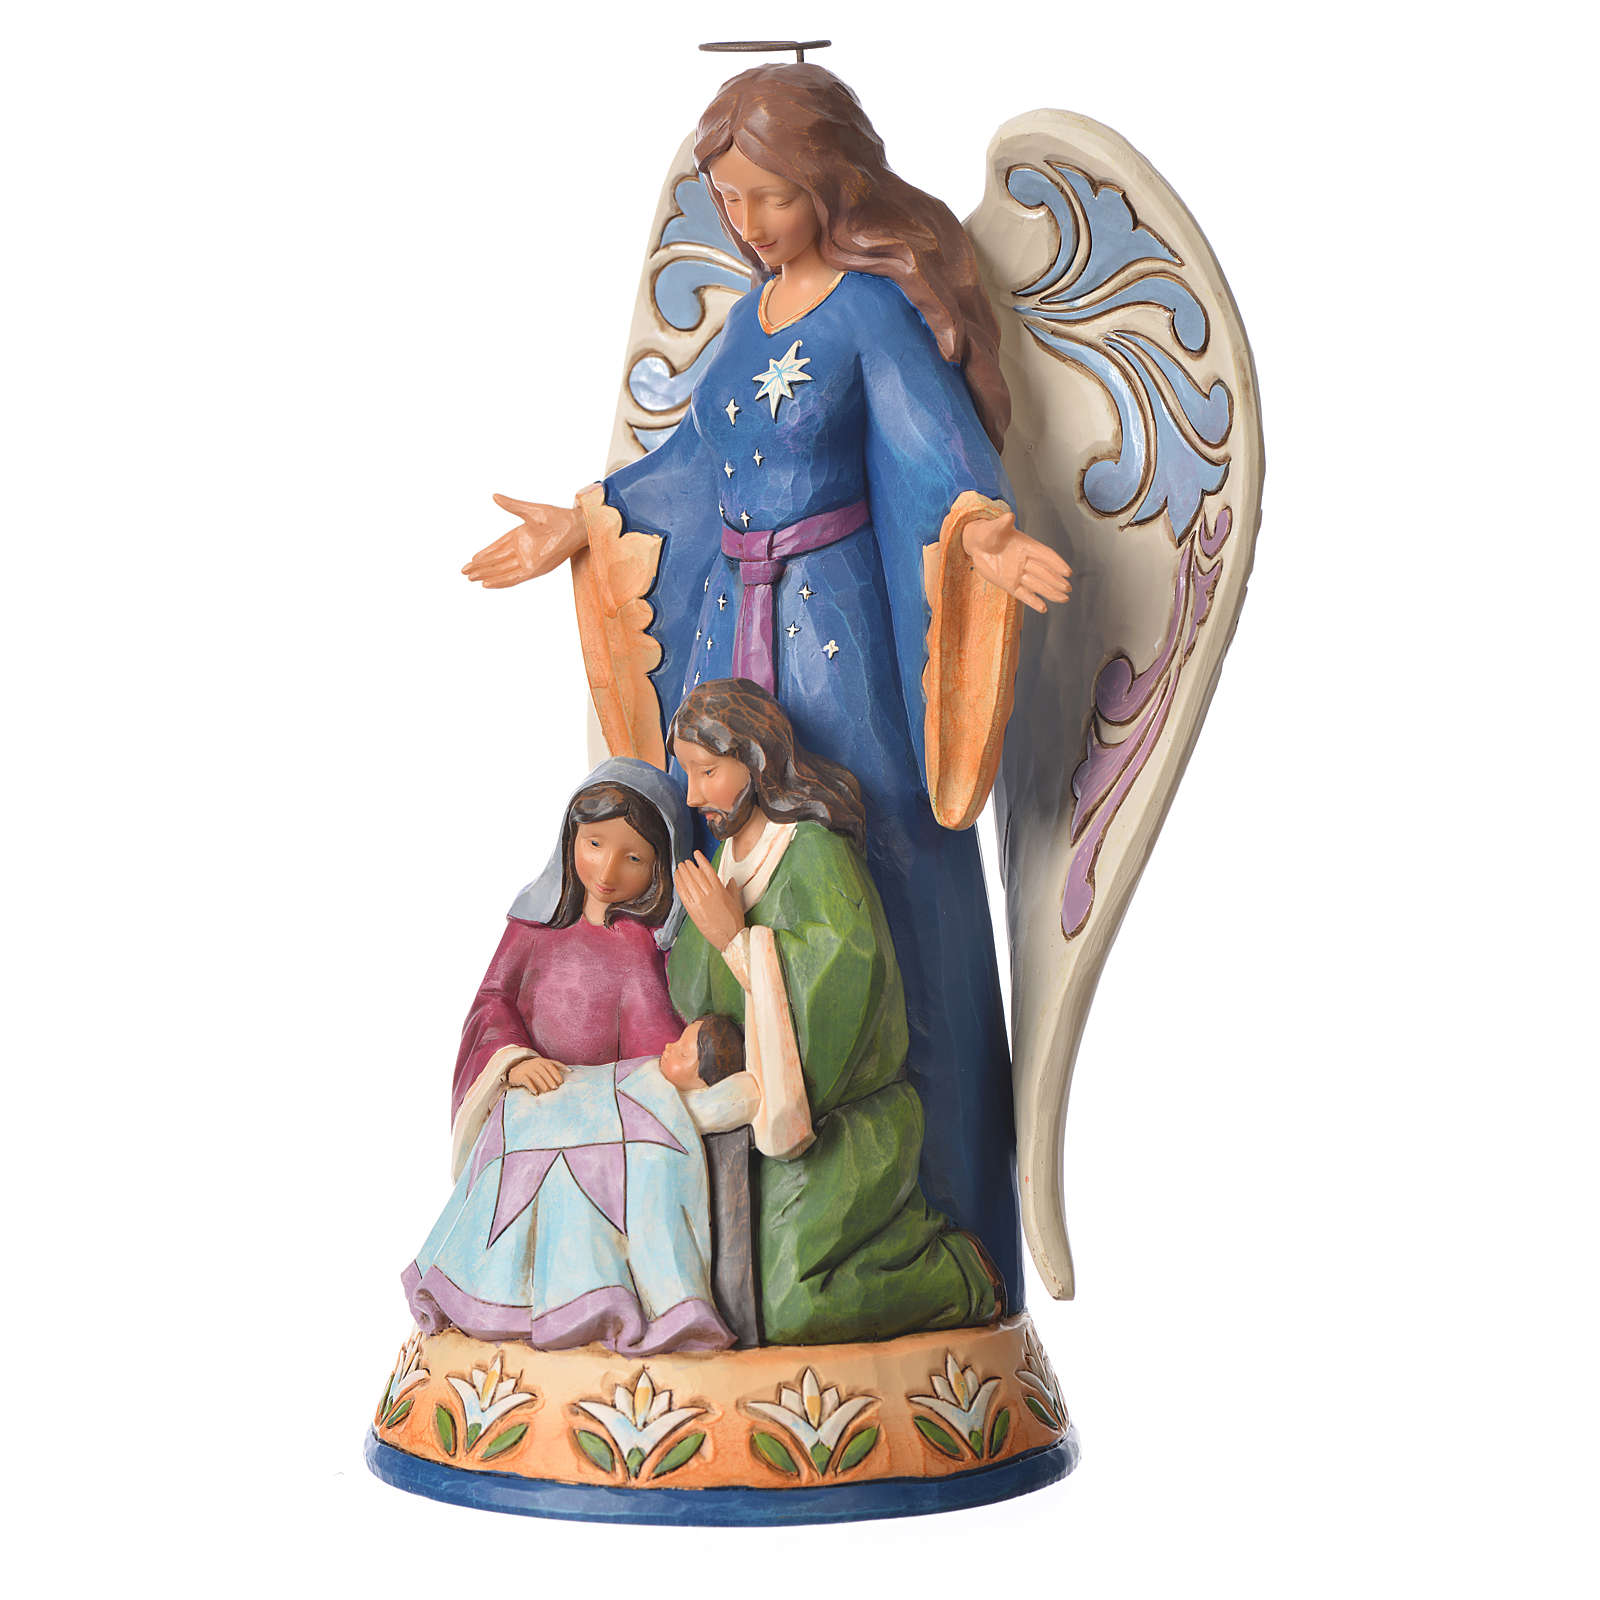 Jim Shore - Angel with Holy Family (ange avec Sainte Famille) 23x16cm 4